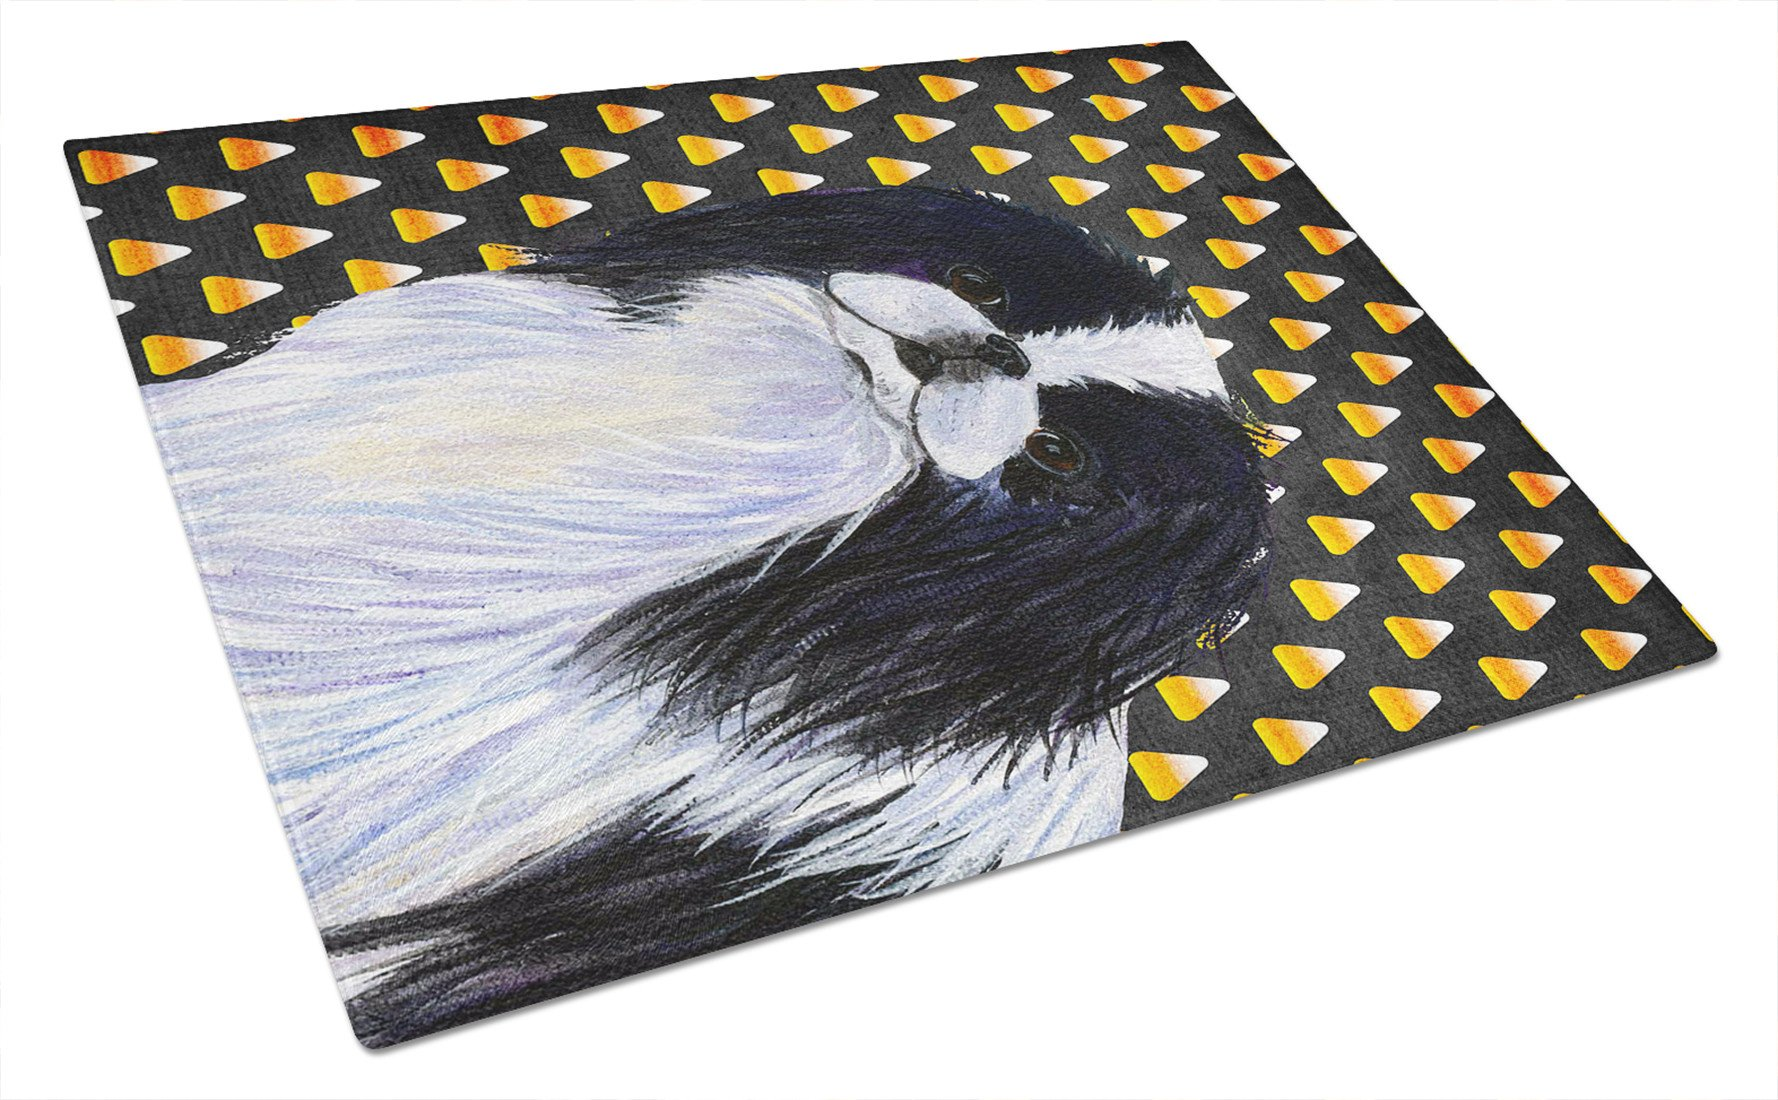 Japanese Chin Candy Corn Halloween Portrait Glass Cutting Board Large by Caroline's Treasures